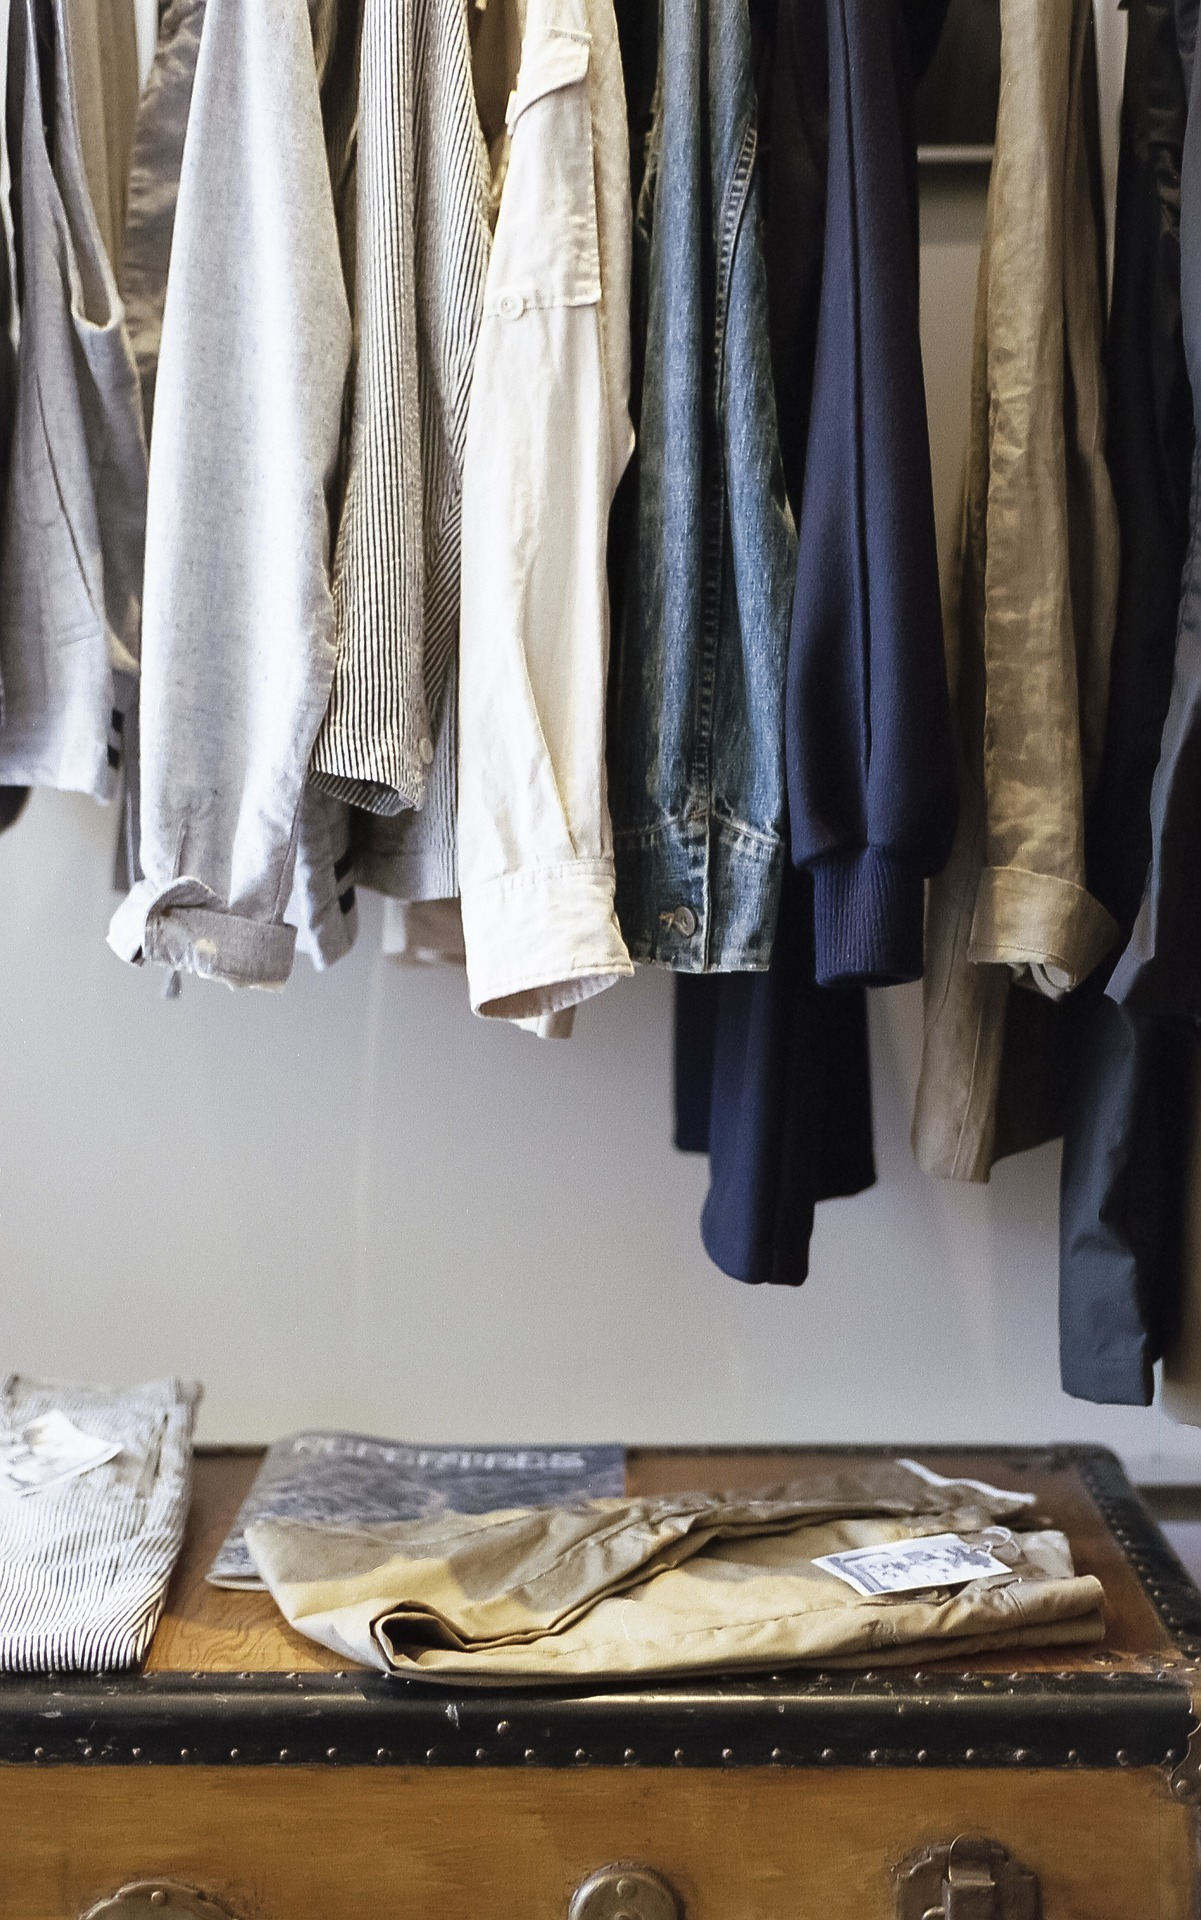 Odor Control and Micro Prevention Applications: Closet